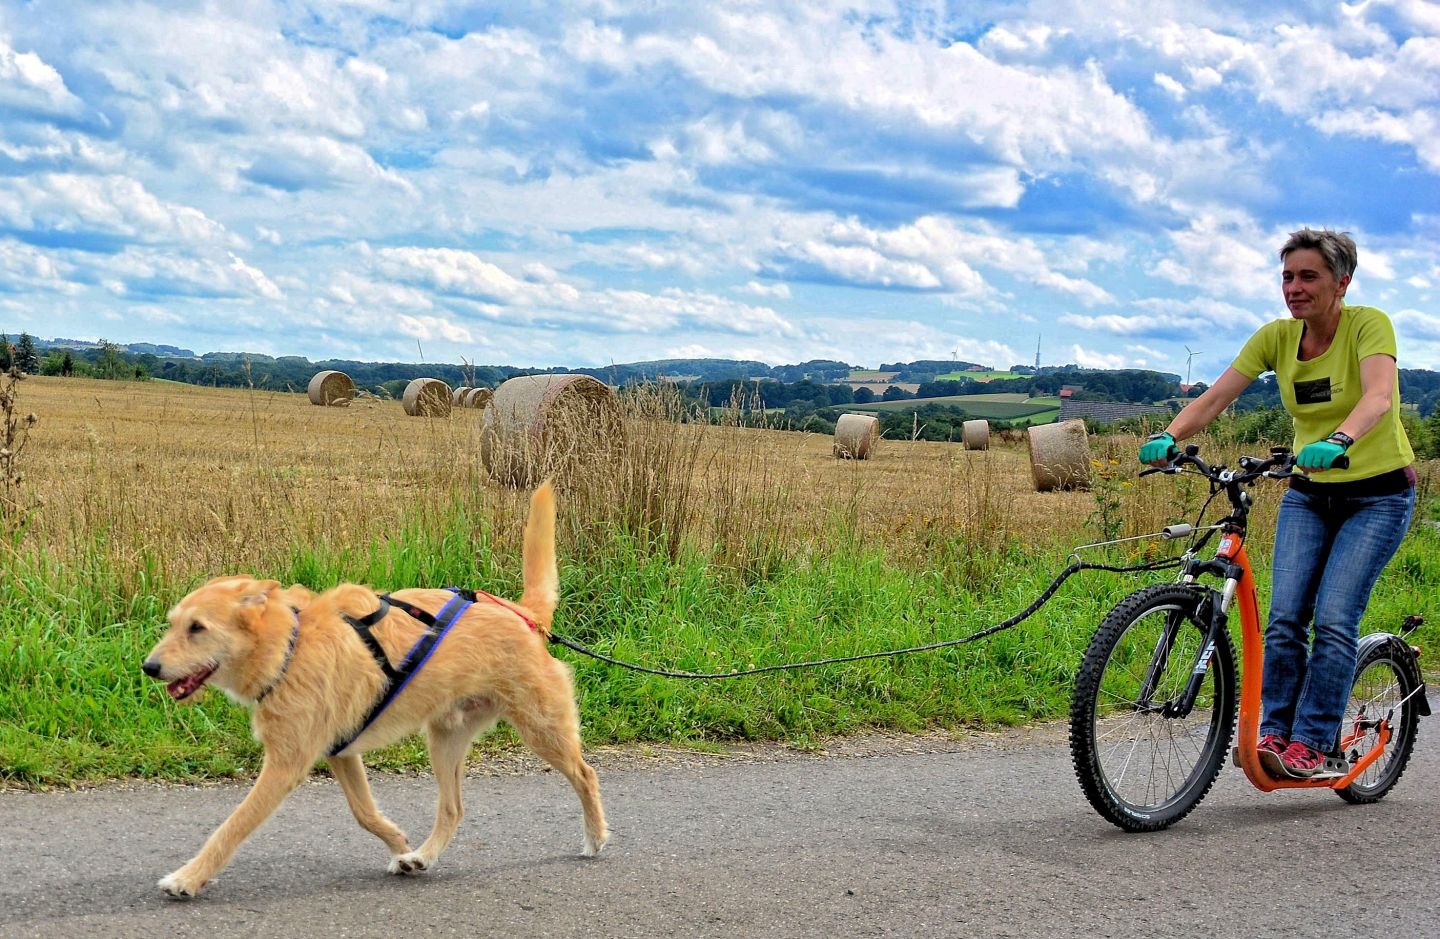 Dogscooter-Zughundesport-APORT-01